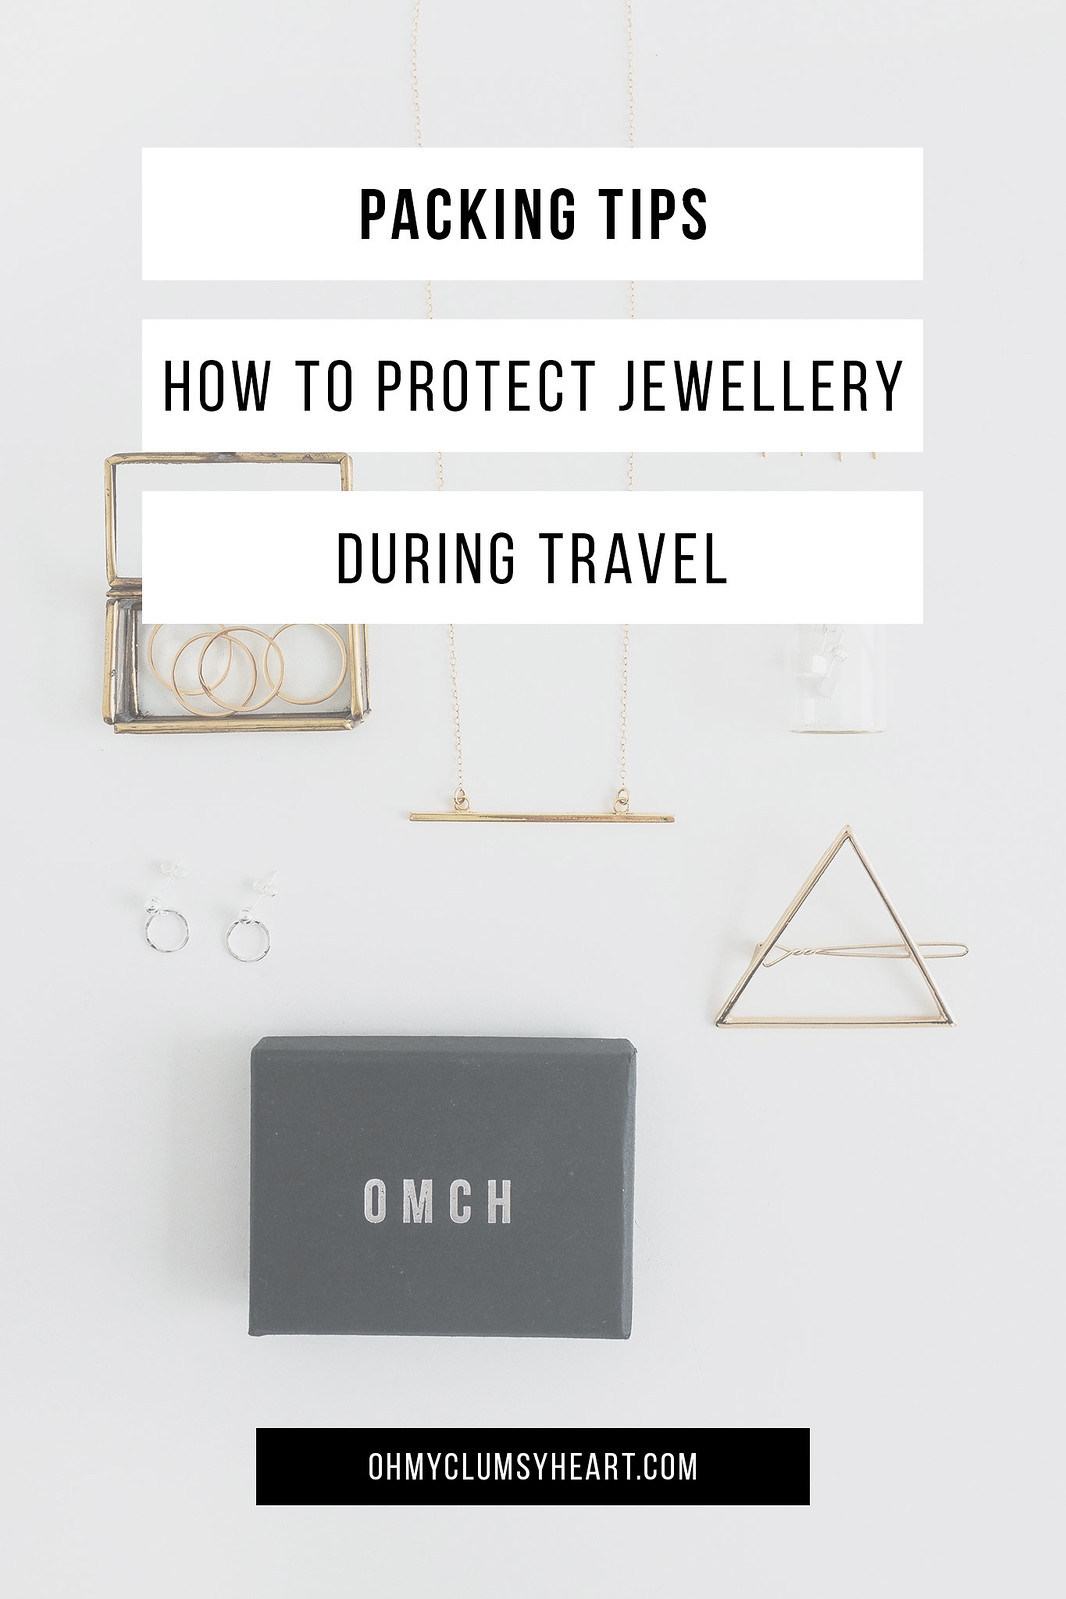 Travelling With Jewellery: 5 Packing Tips